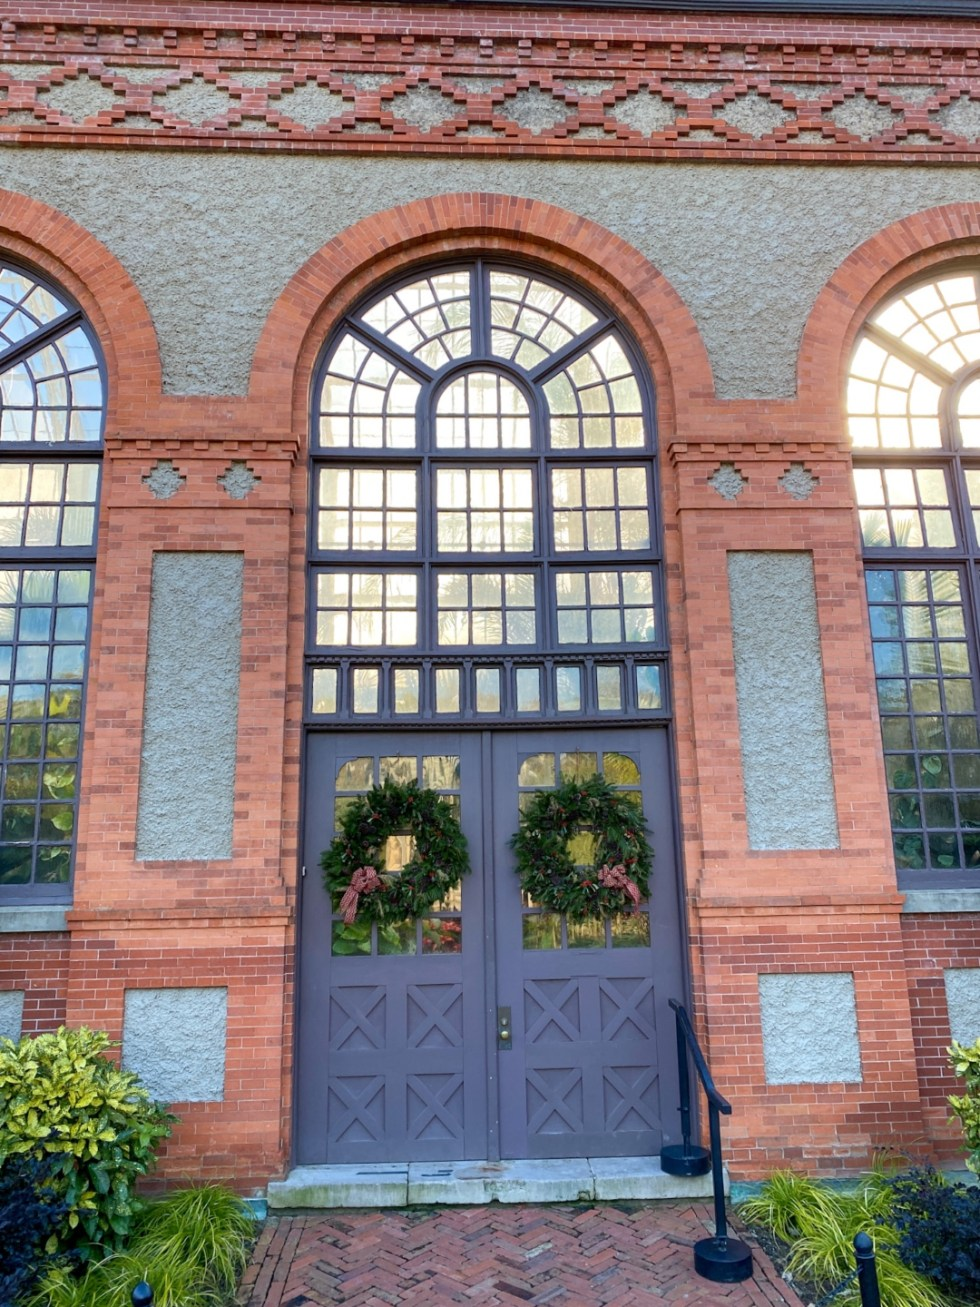 Christmas in Asheville: a Weekend Getaway During the Holidays - I'm Fixin' To - @imfixintoblog |Christmas in Asheville NC by popular NC lifestyle blog, I'm Fixin' To: image of a red brick building with double purple doors.